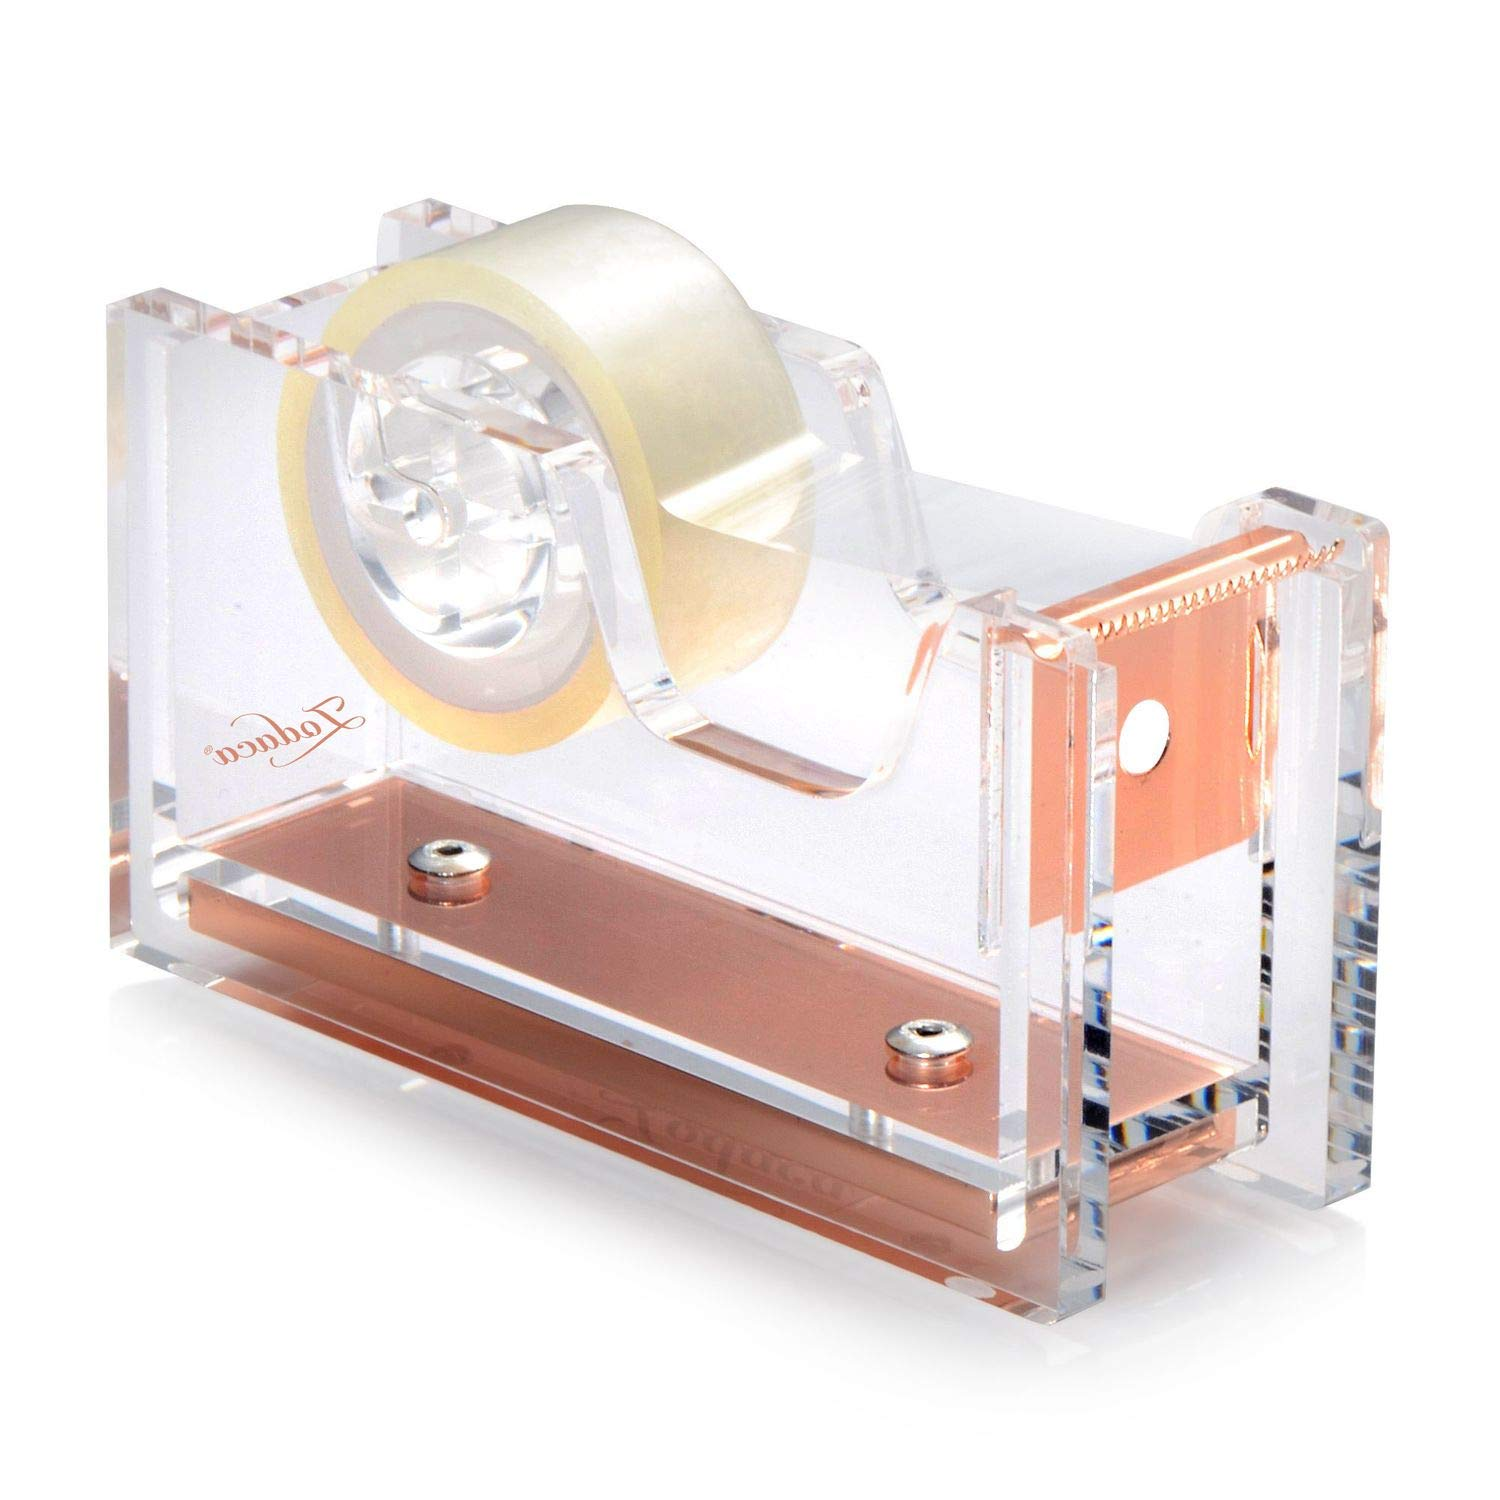 Acrylic Tape Dispenser, Zodaca Crystal Clear Deluxe Desktop Rose Gold Tape Dispenser, Medium Standard Size, for Tape below 3/4 with Tape included, Classic Design to Brighten up Your Desk and Office eForCity AX-AY-ABHI-115141